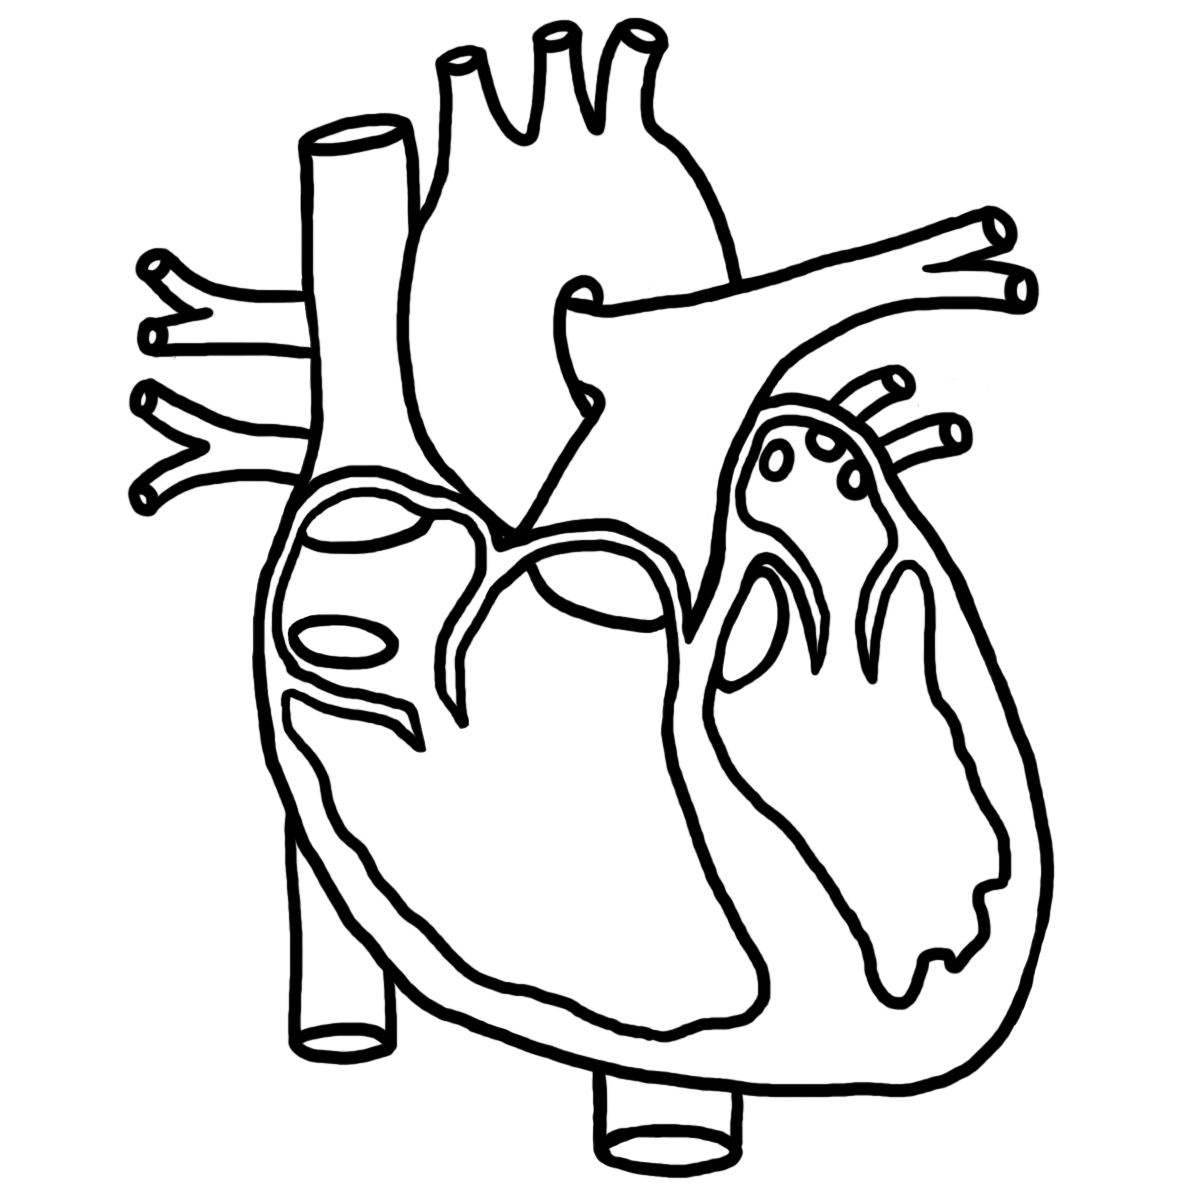 Human Heart Diagram For Kids